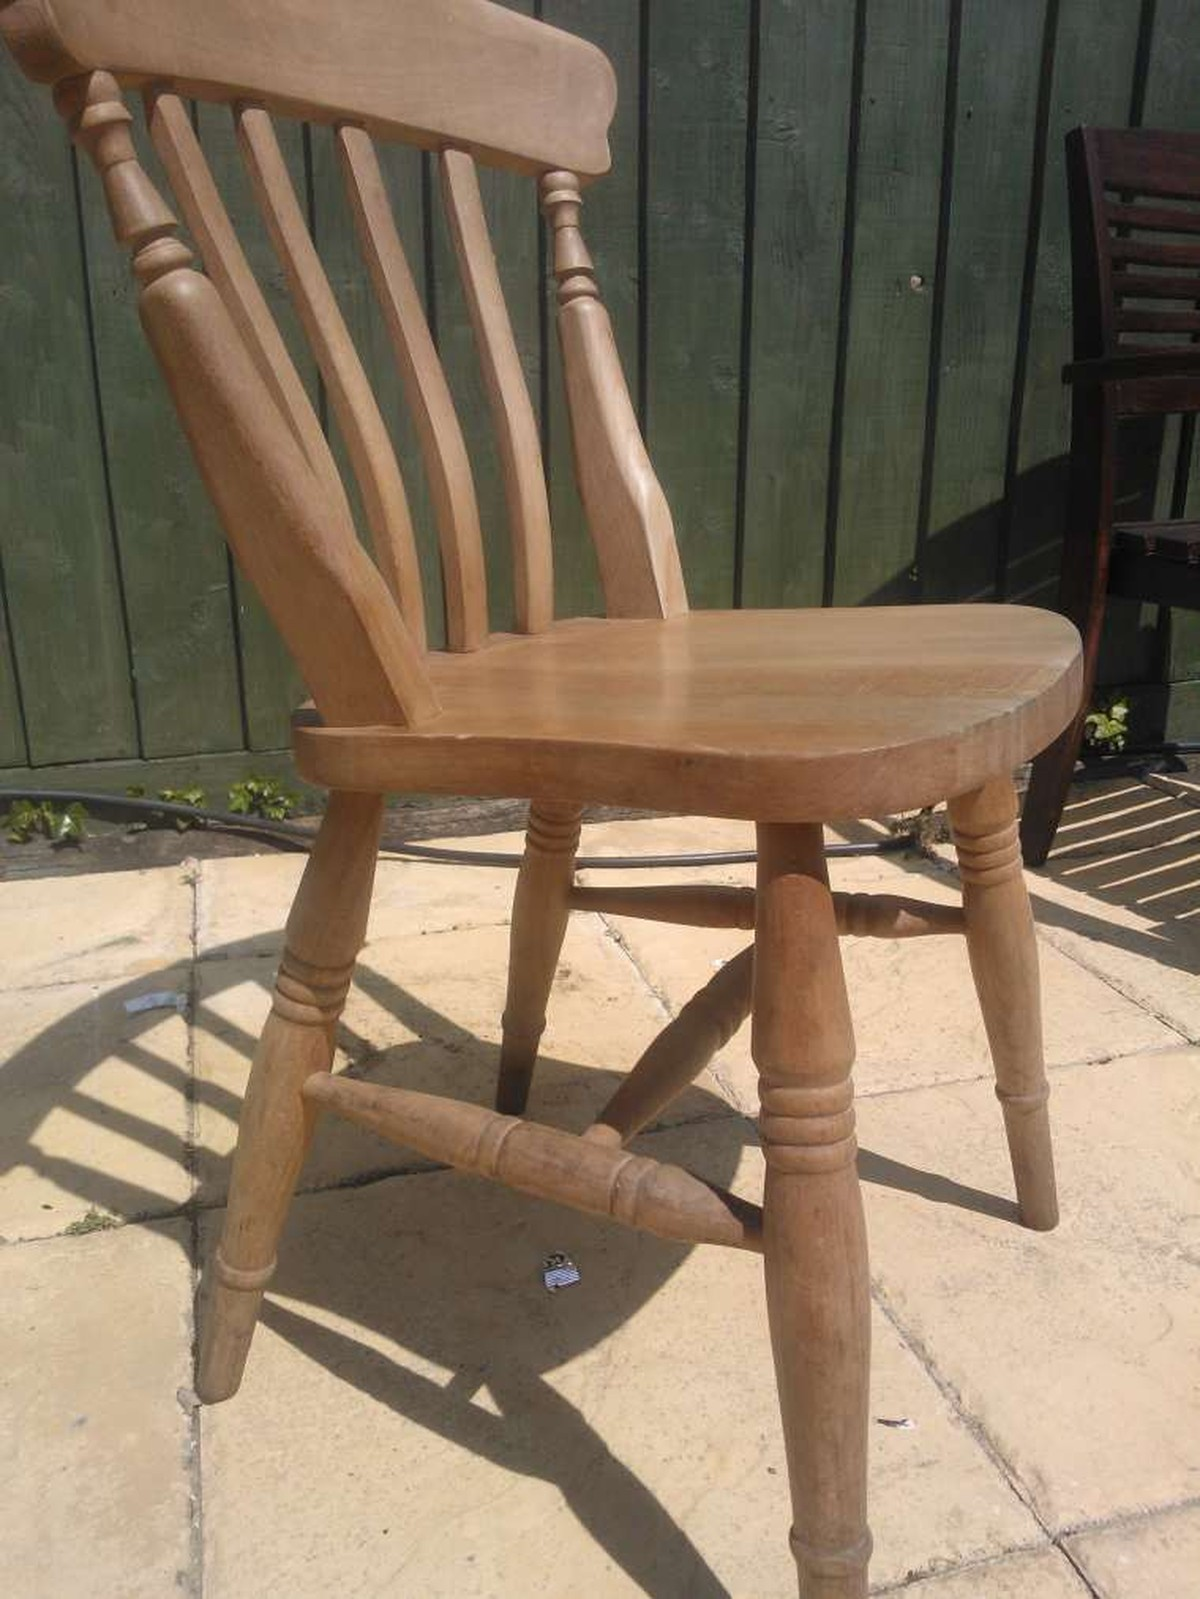 Farm Wood Furniture ~ Secondhand hotel furniture dining chairs beech